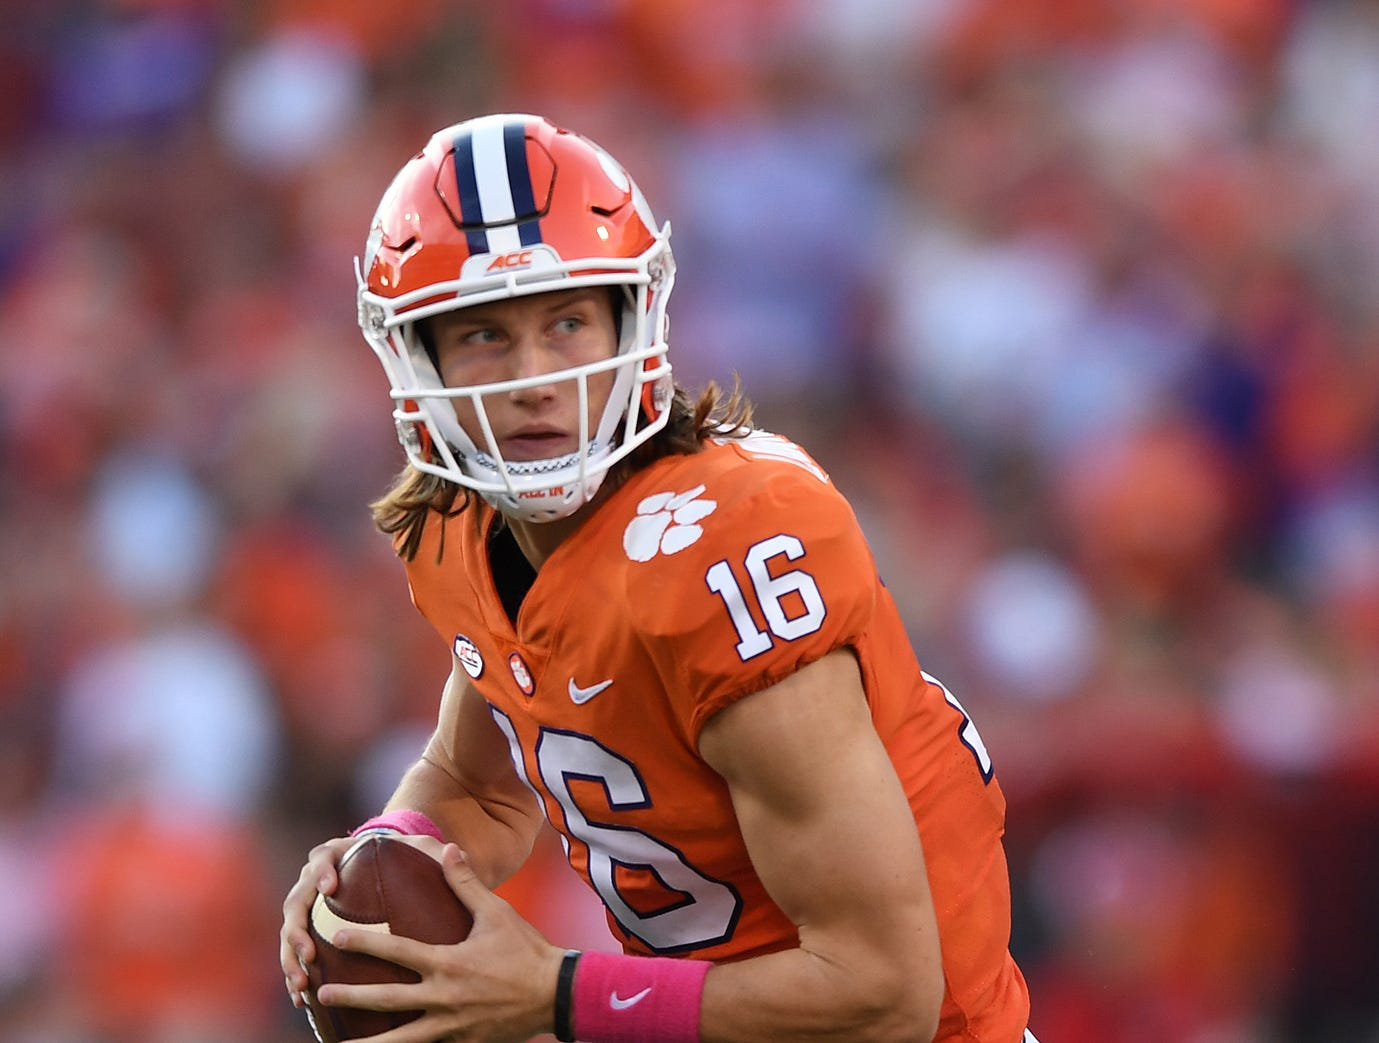 Clemson quarterback Trevor Lawrence (16) plays against NC State during the 3rd quarter Saturday, October 20, 2018 at Clemson's Memorial Stadium.